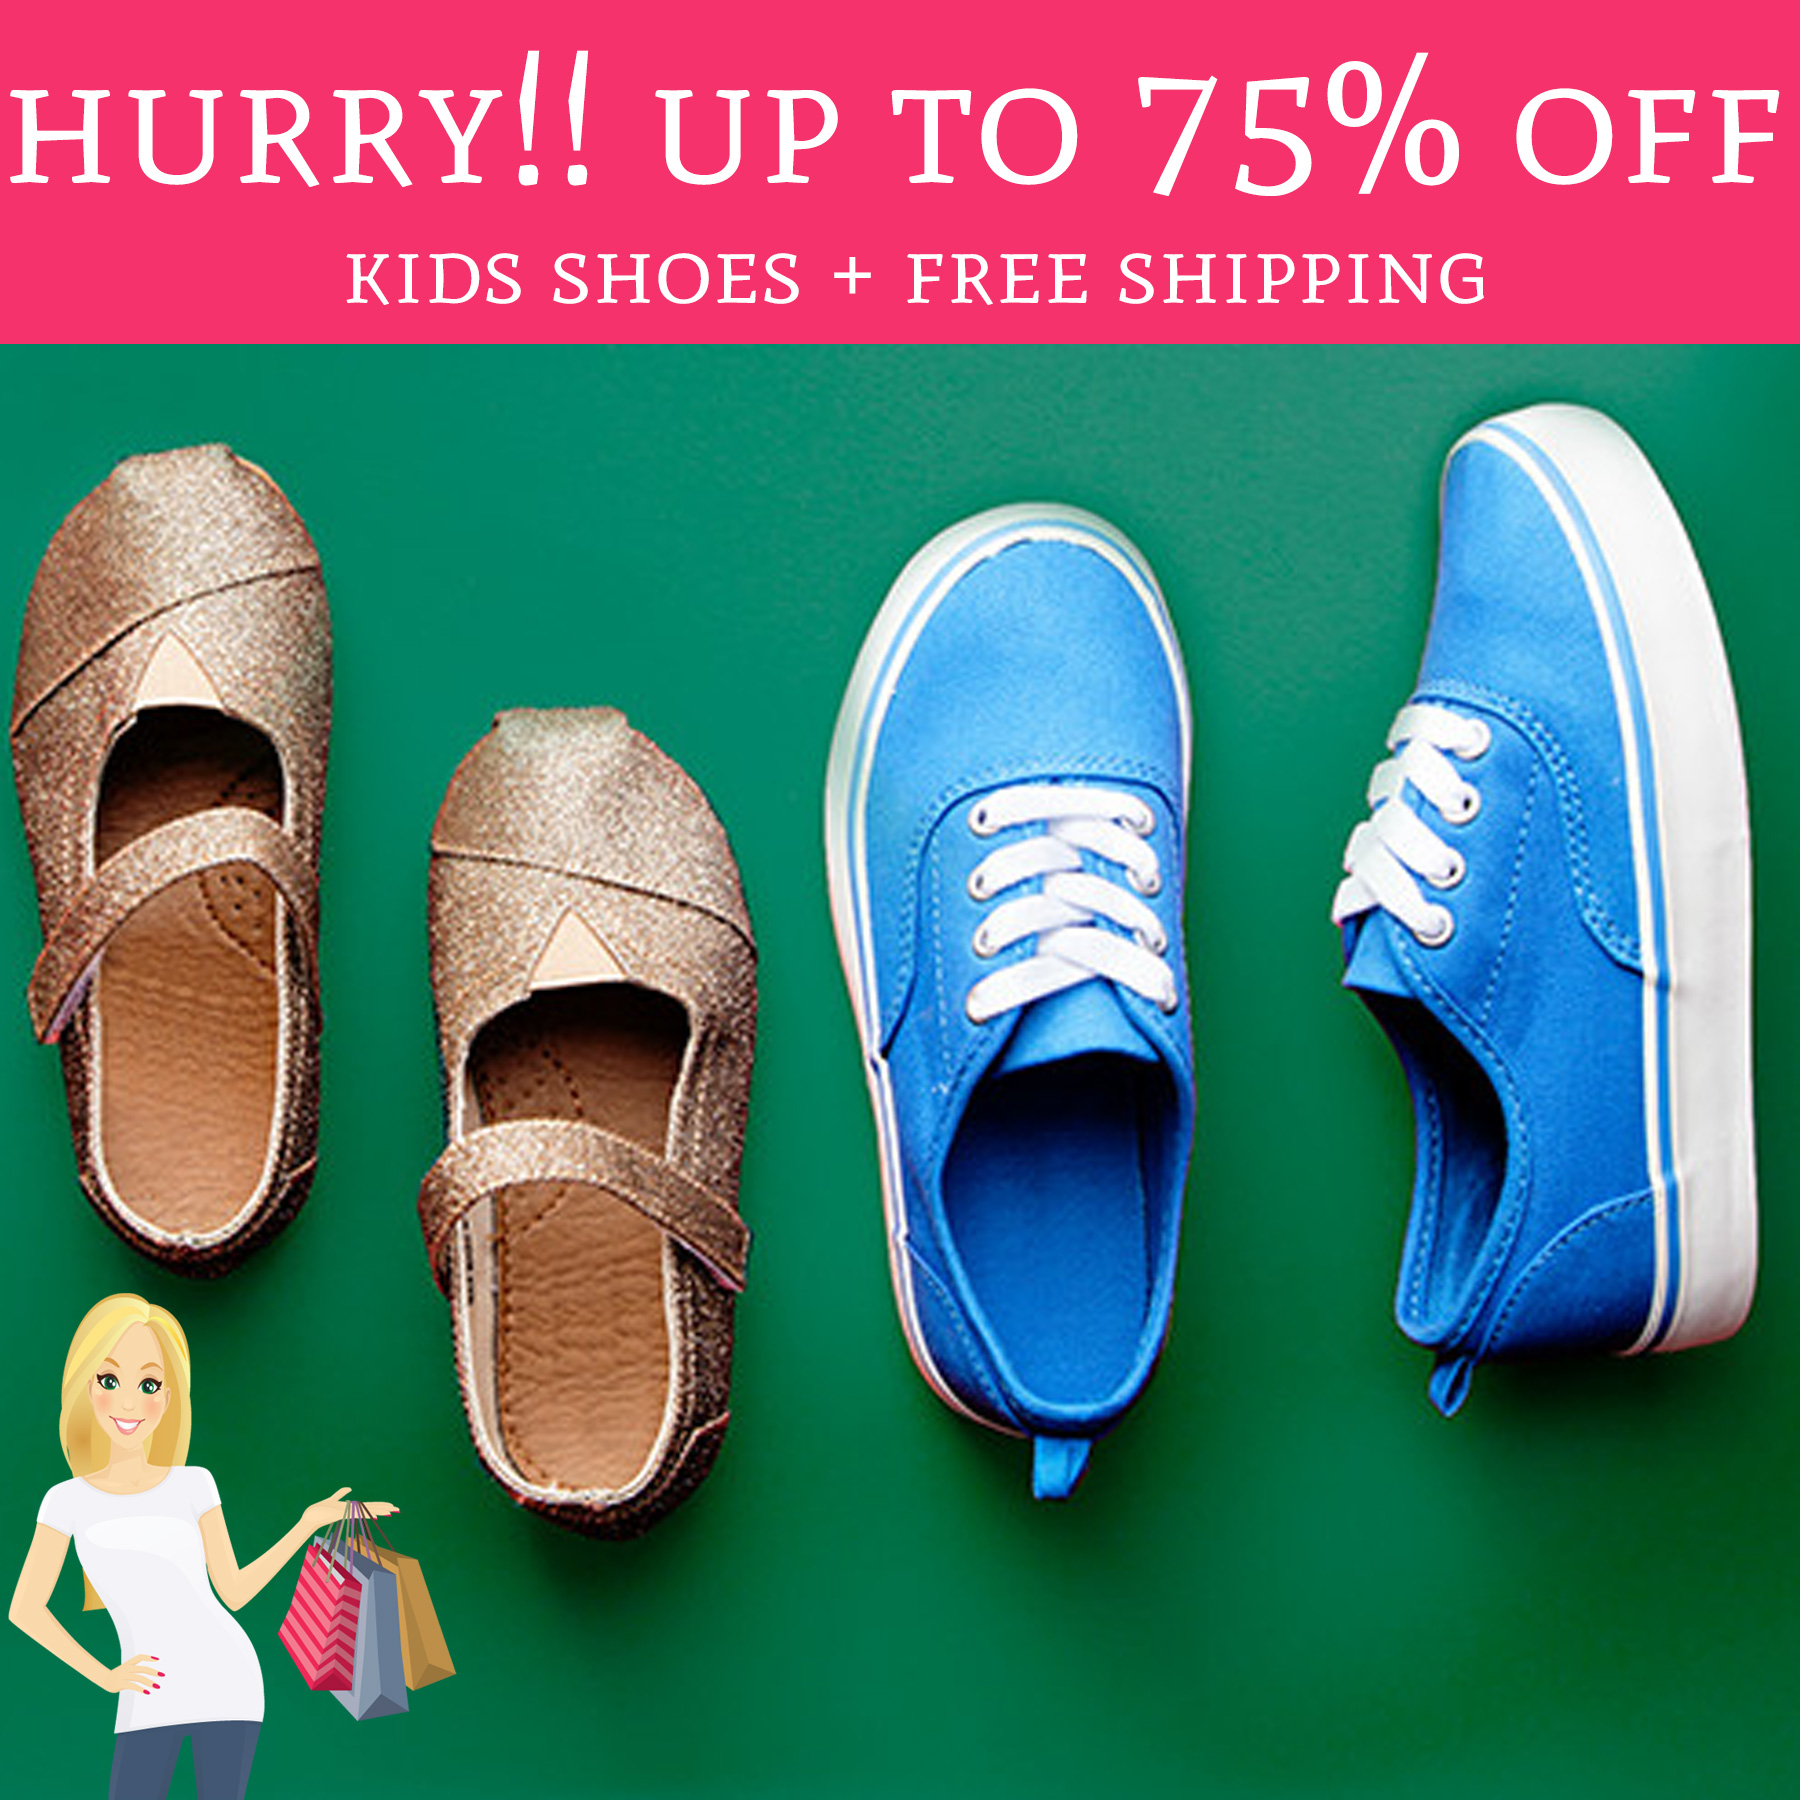 WOW! Up To 75% Off Kids Shoes (Tons Of Name Brand) + Free